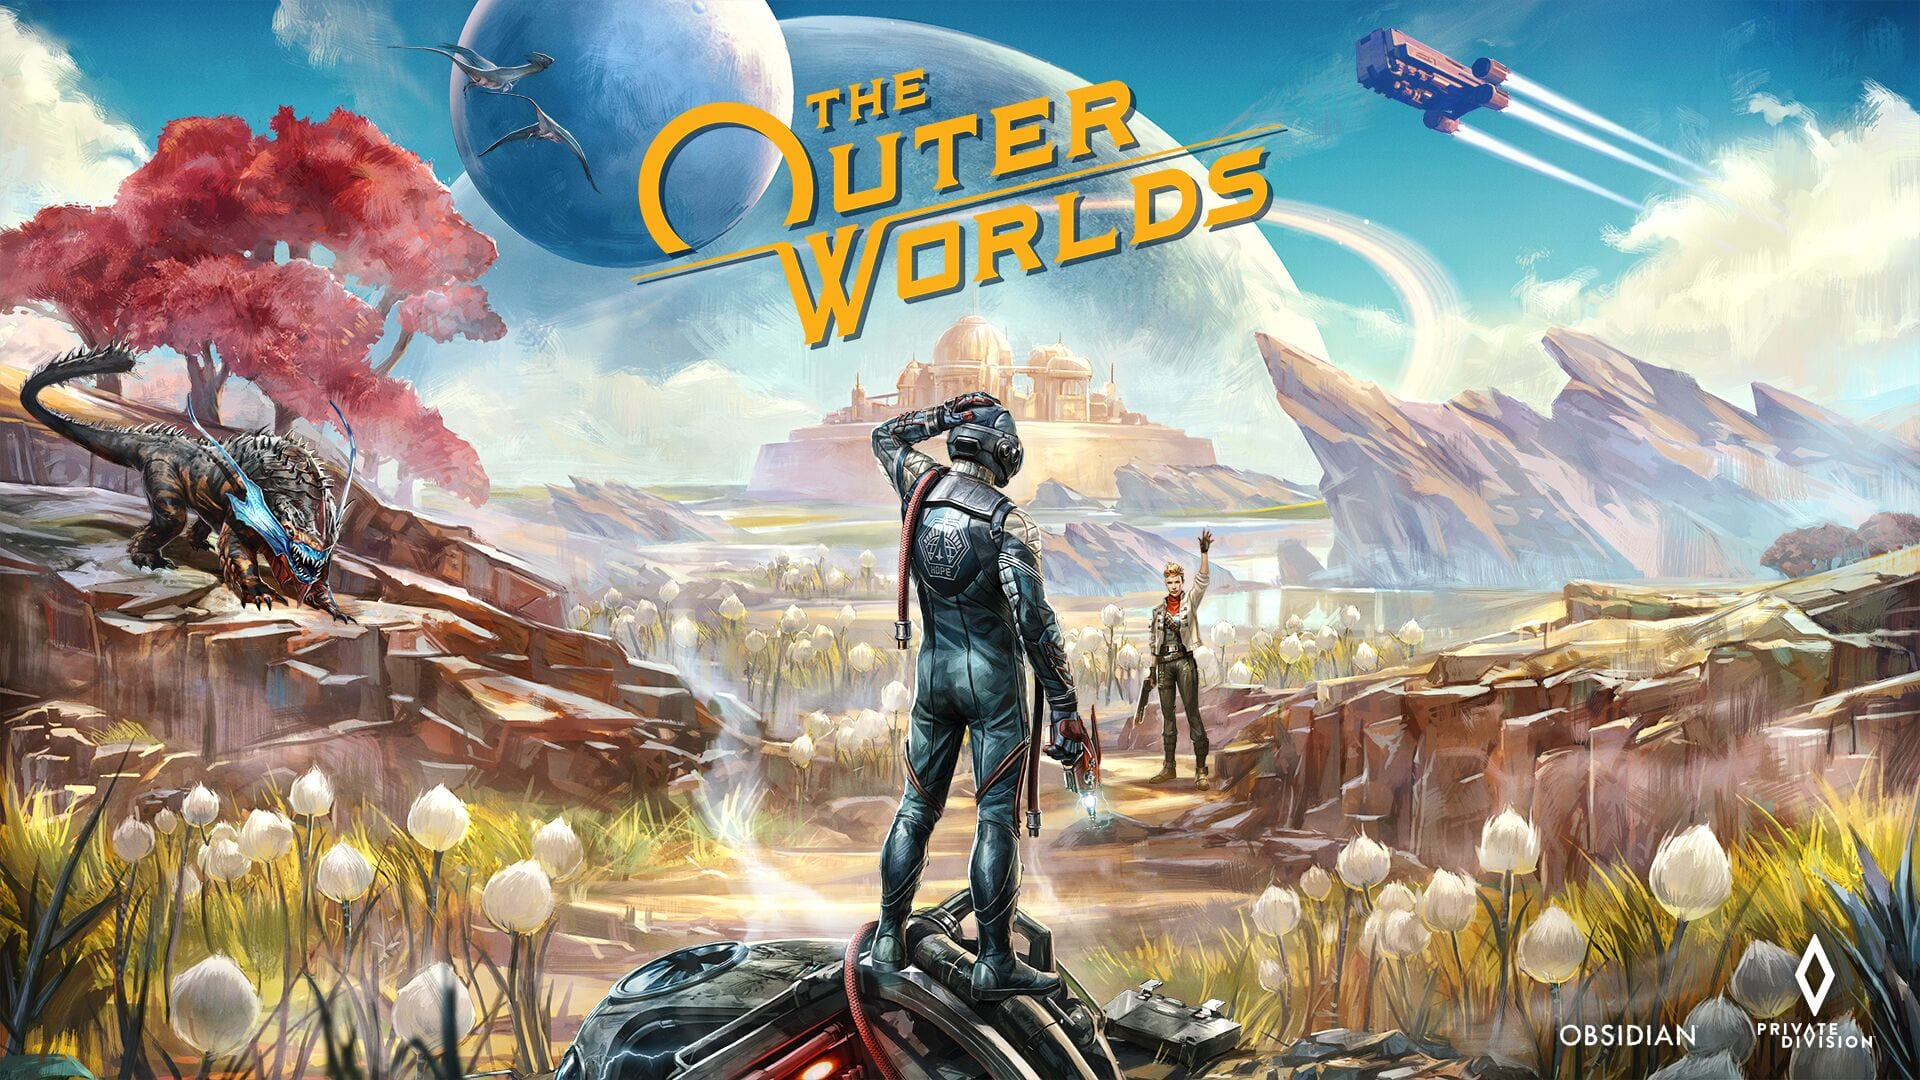 the outer worlds, the frightened engineer, thomas